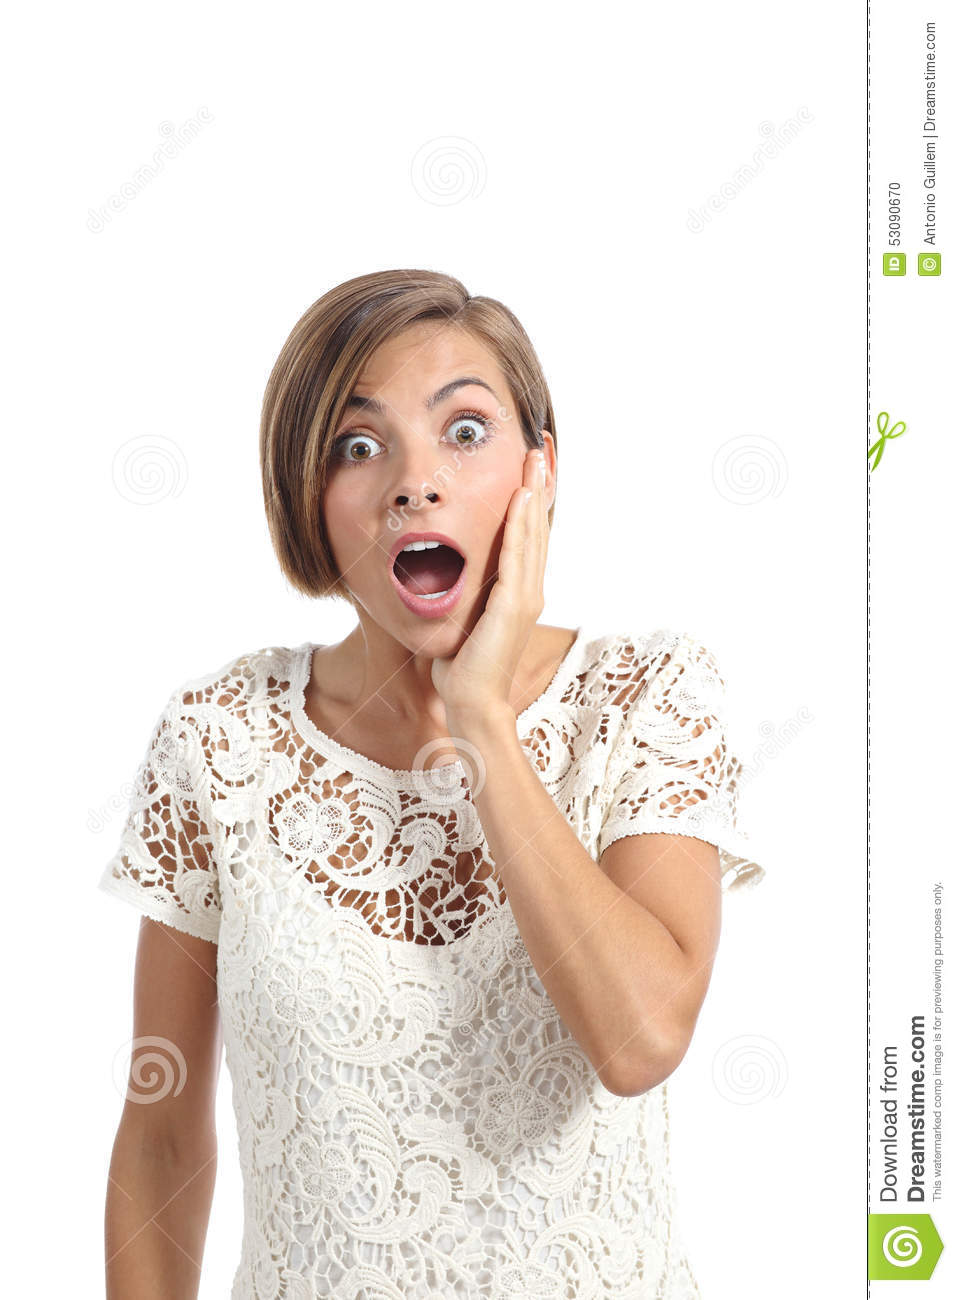 Download Shocked Or Surprised Woman With A Hand On Face Expressing Wow Stock Photo - Image of cheeks, background: 53090670